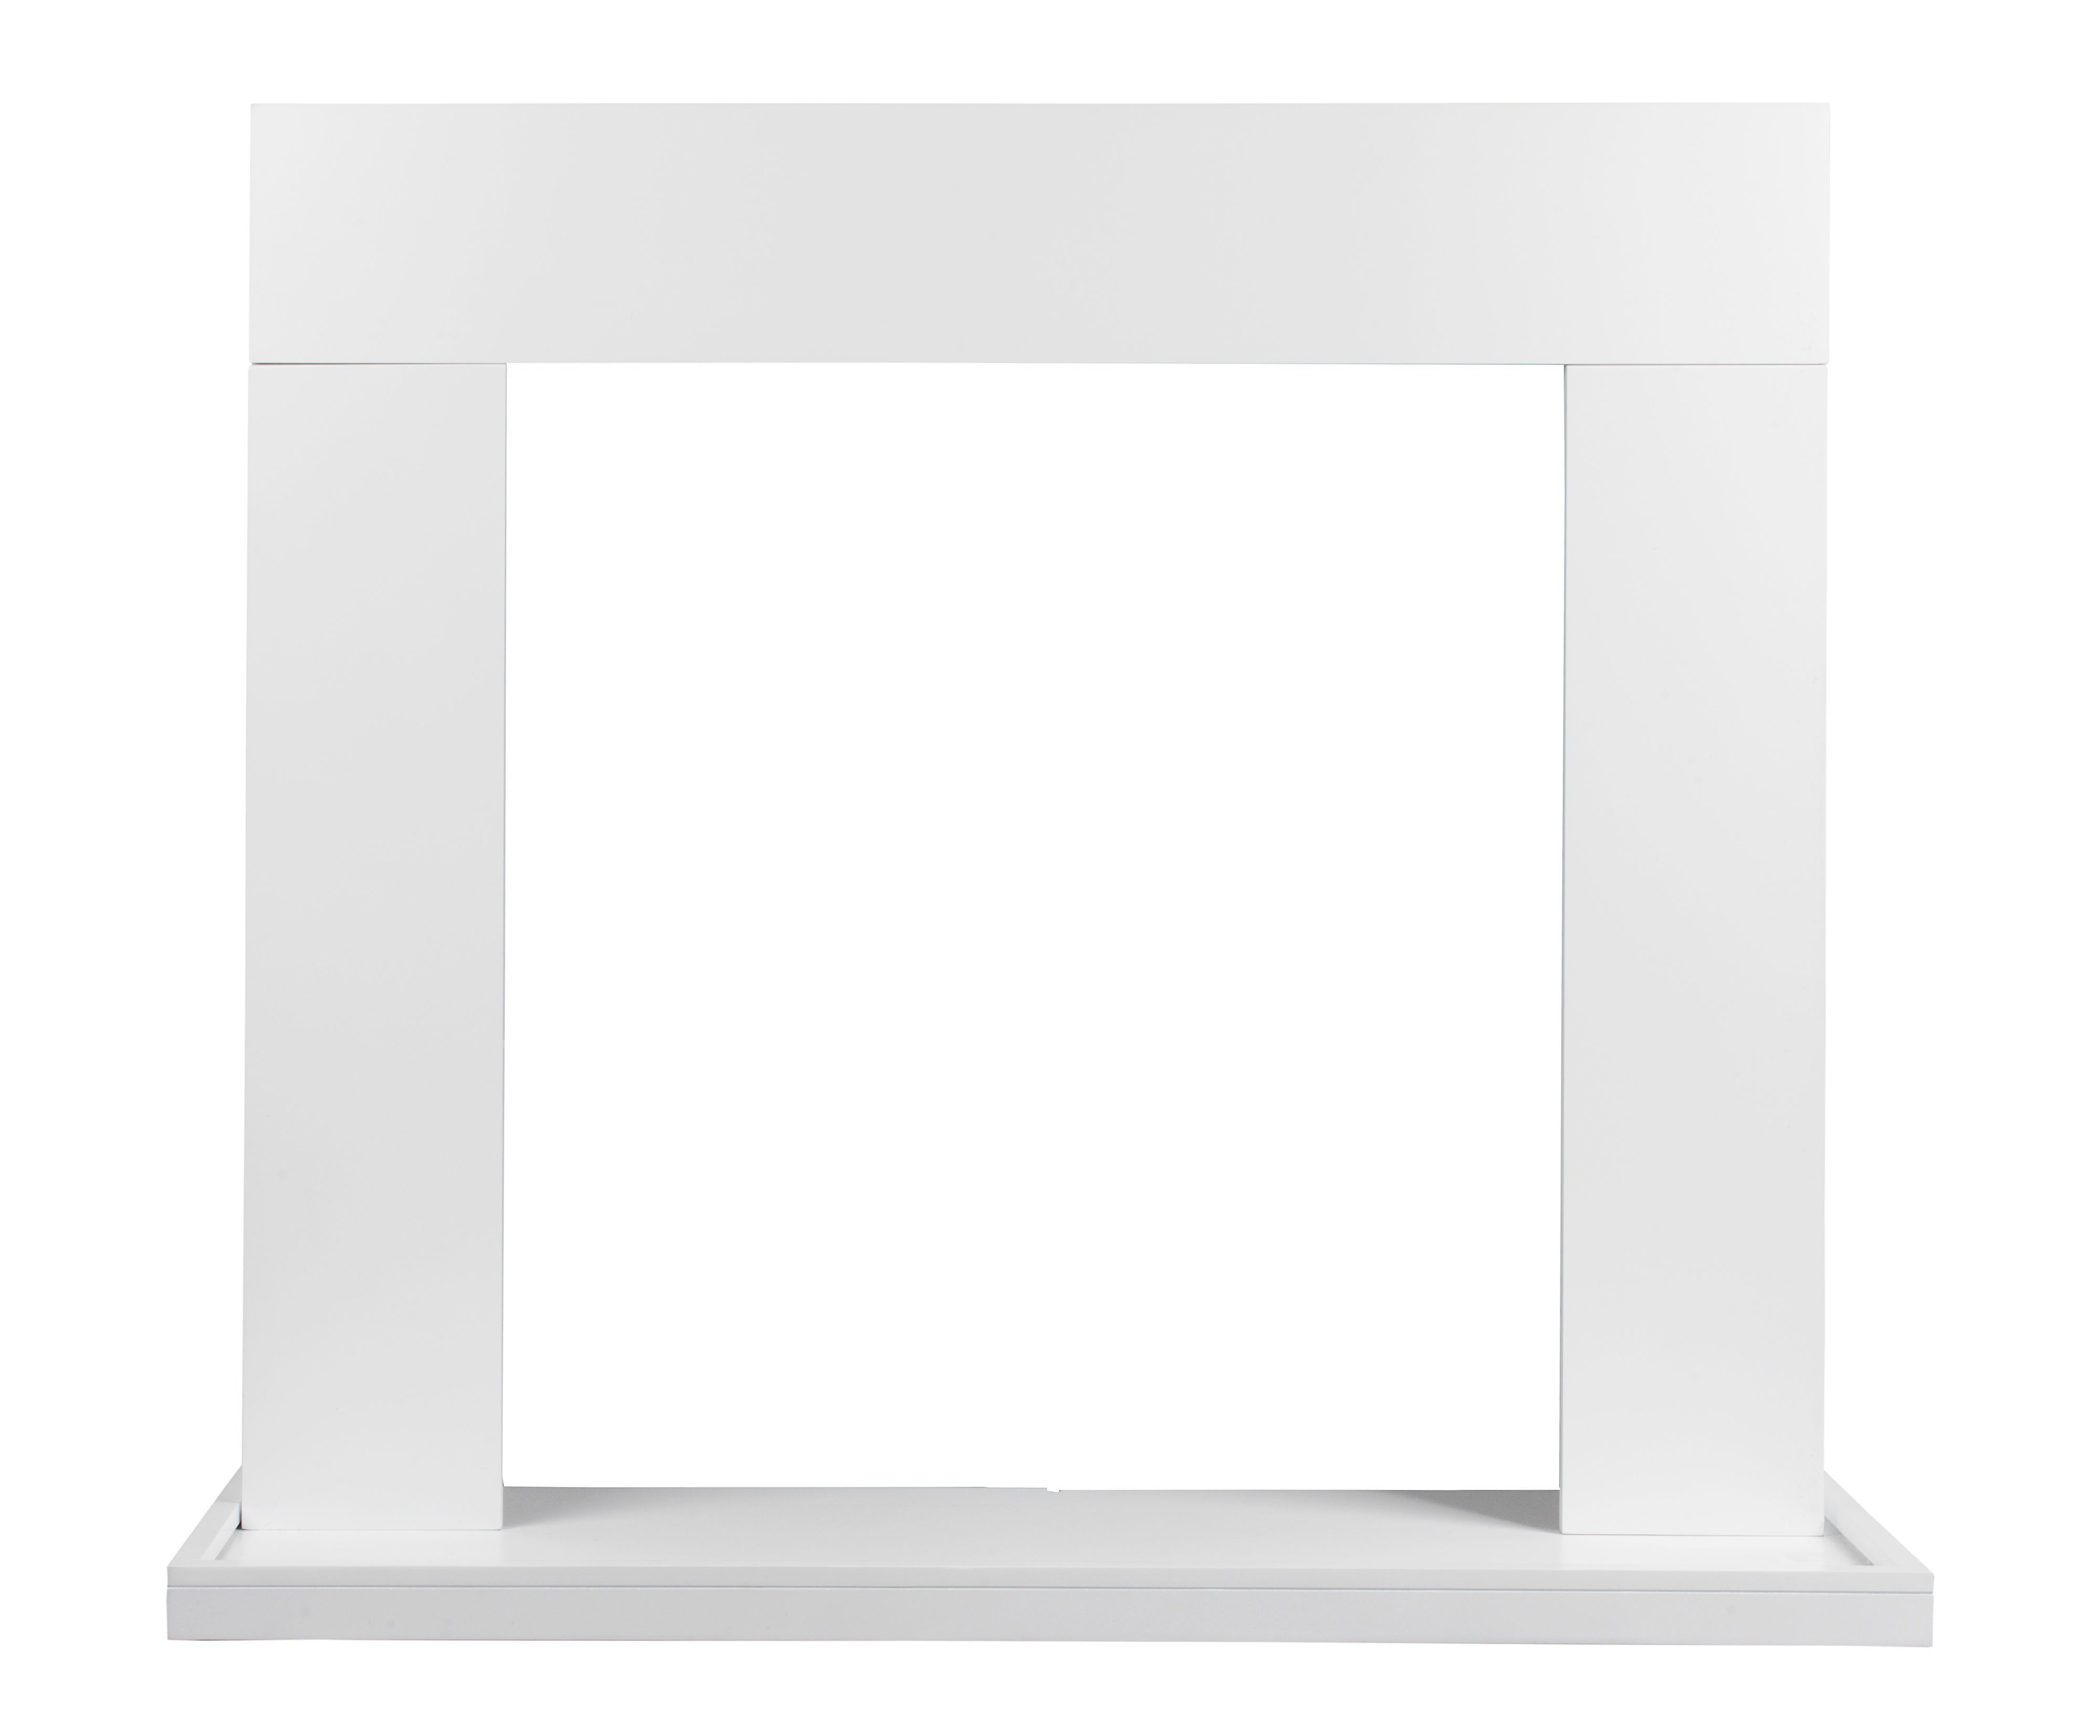 fairford satin white painted mdf fire surround set departments